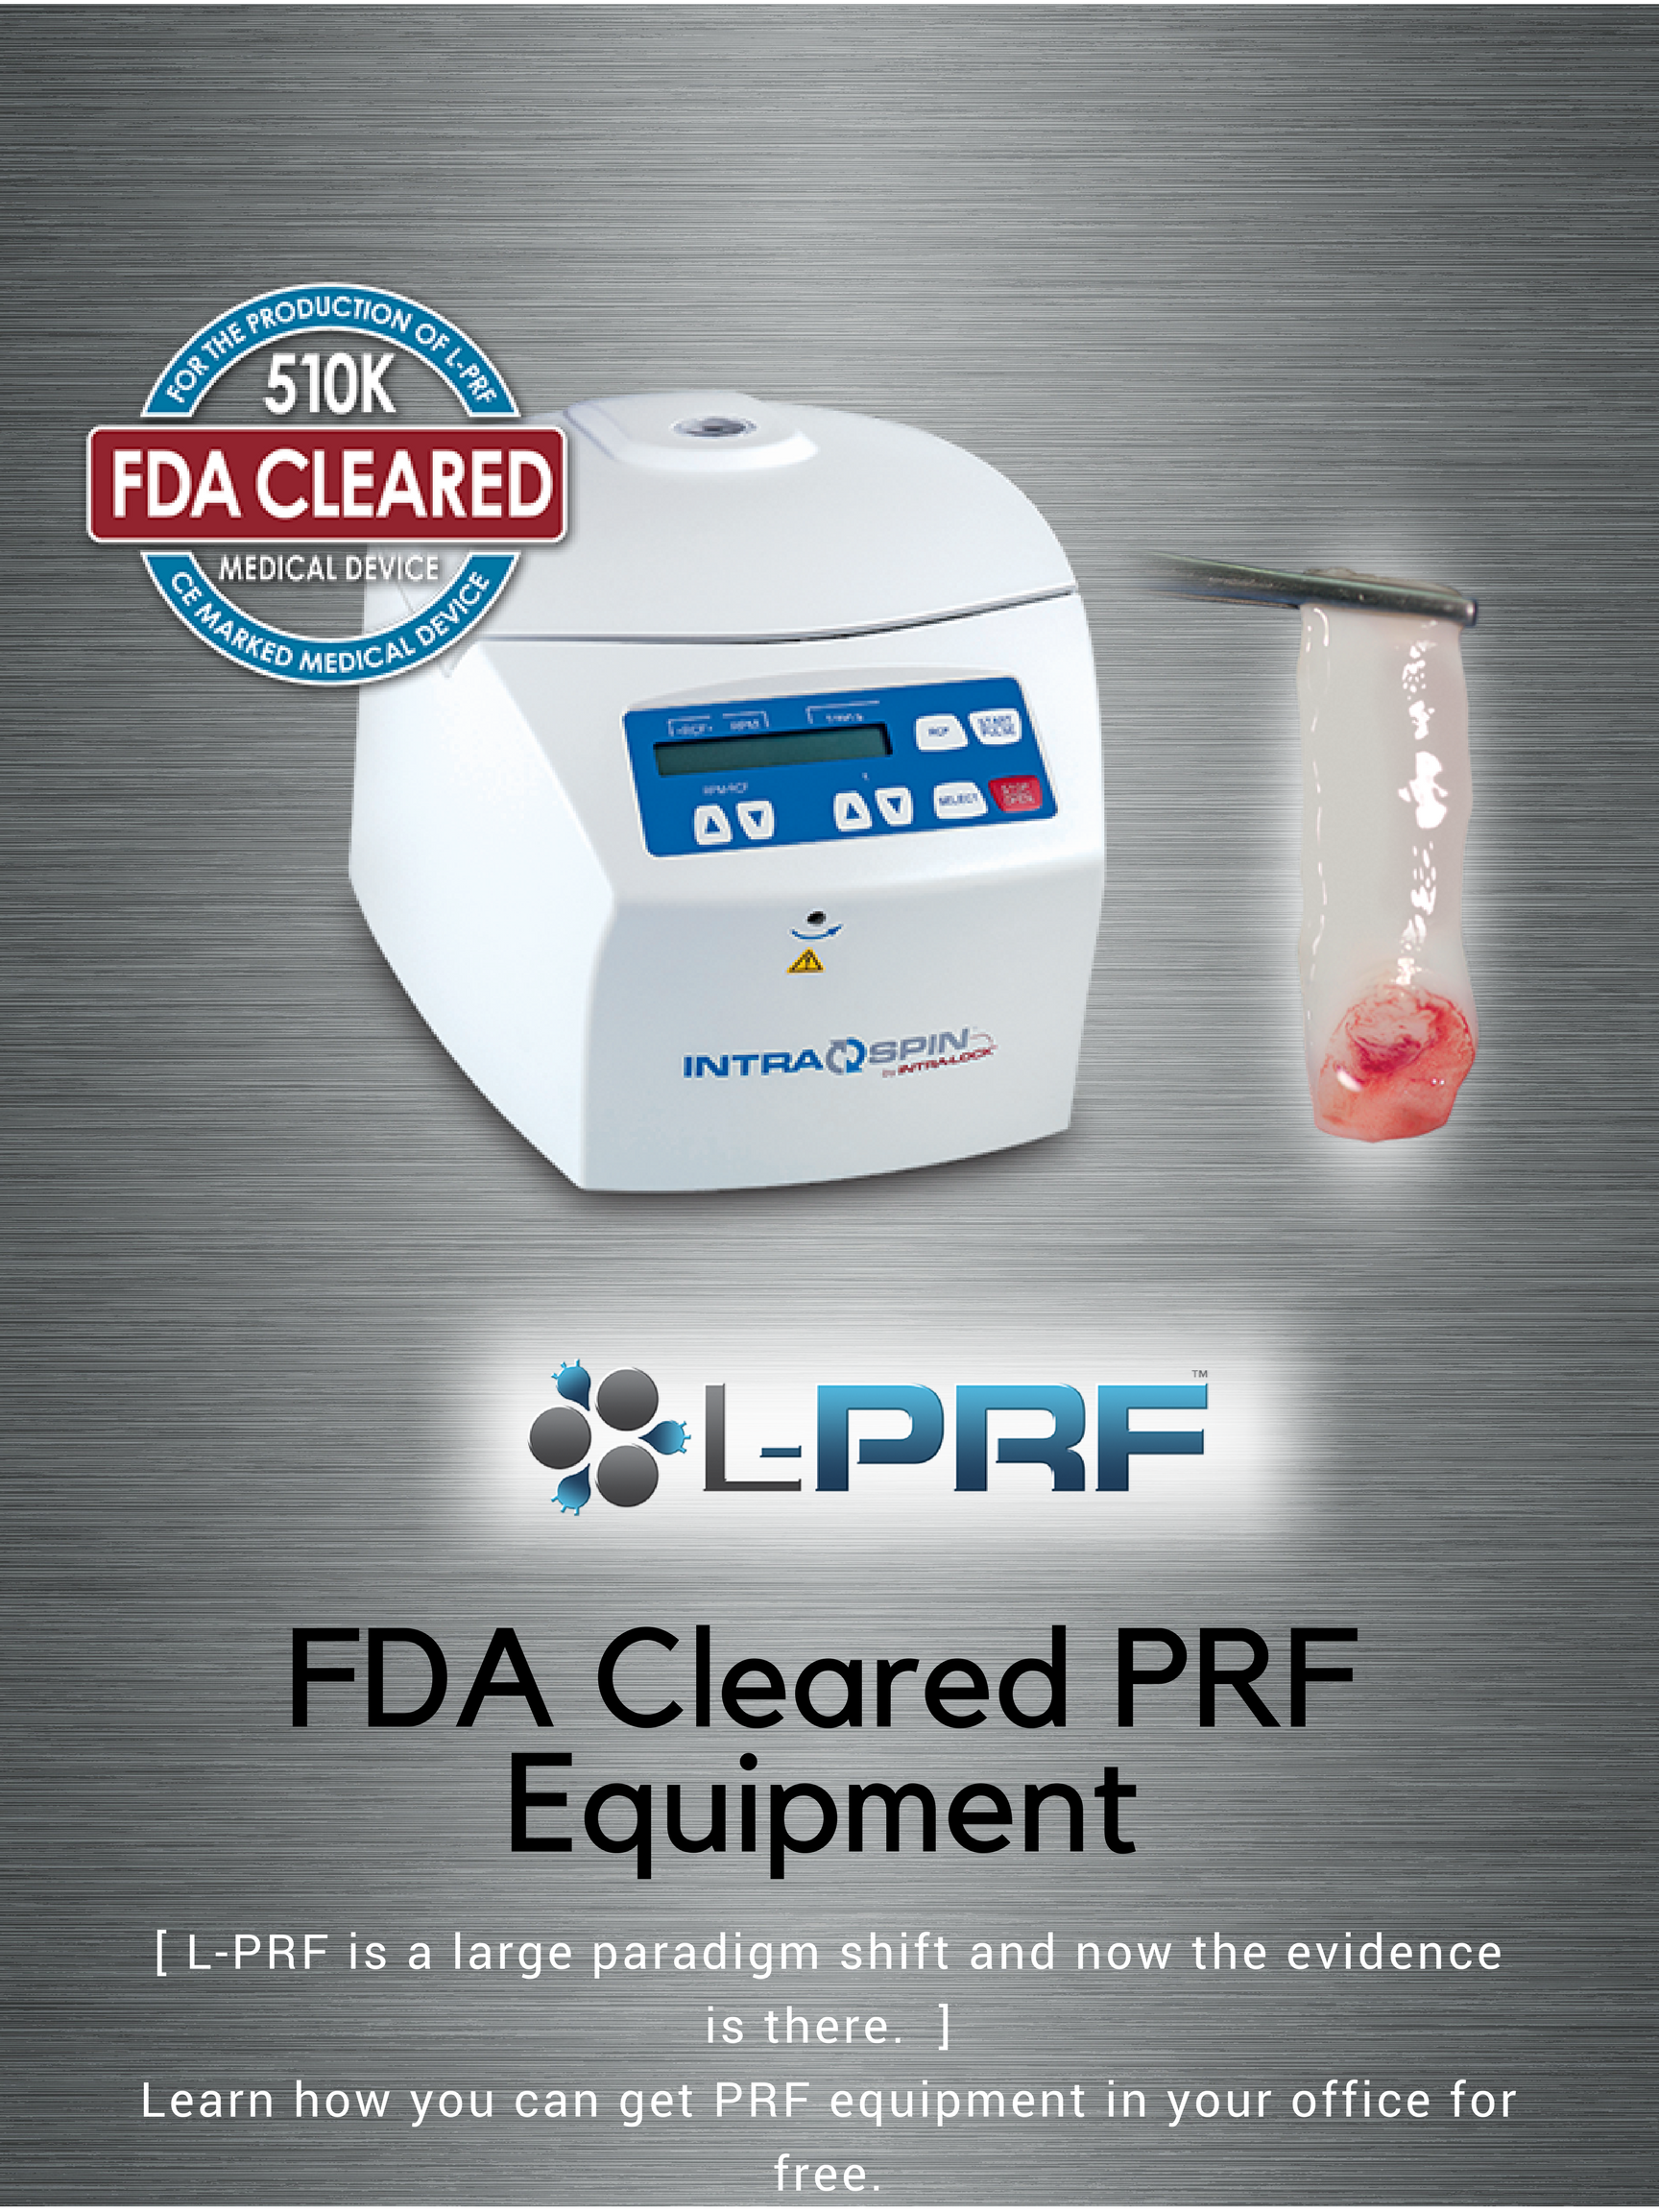 fda-cleared-prf-equipment.png